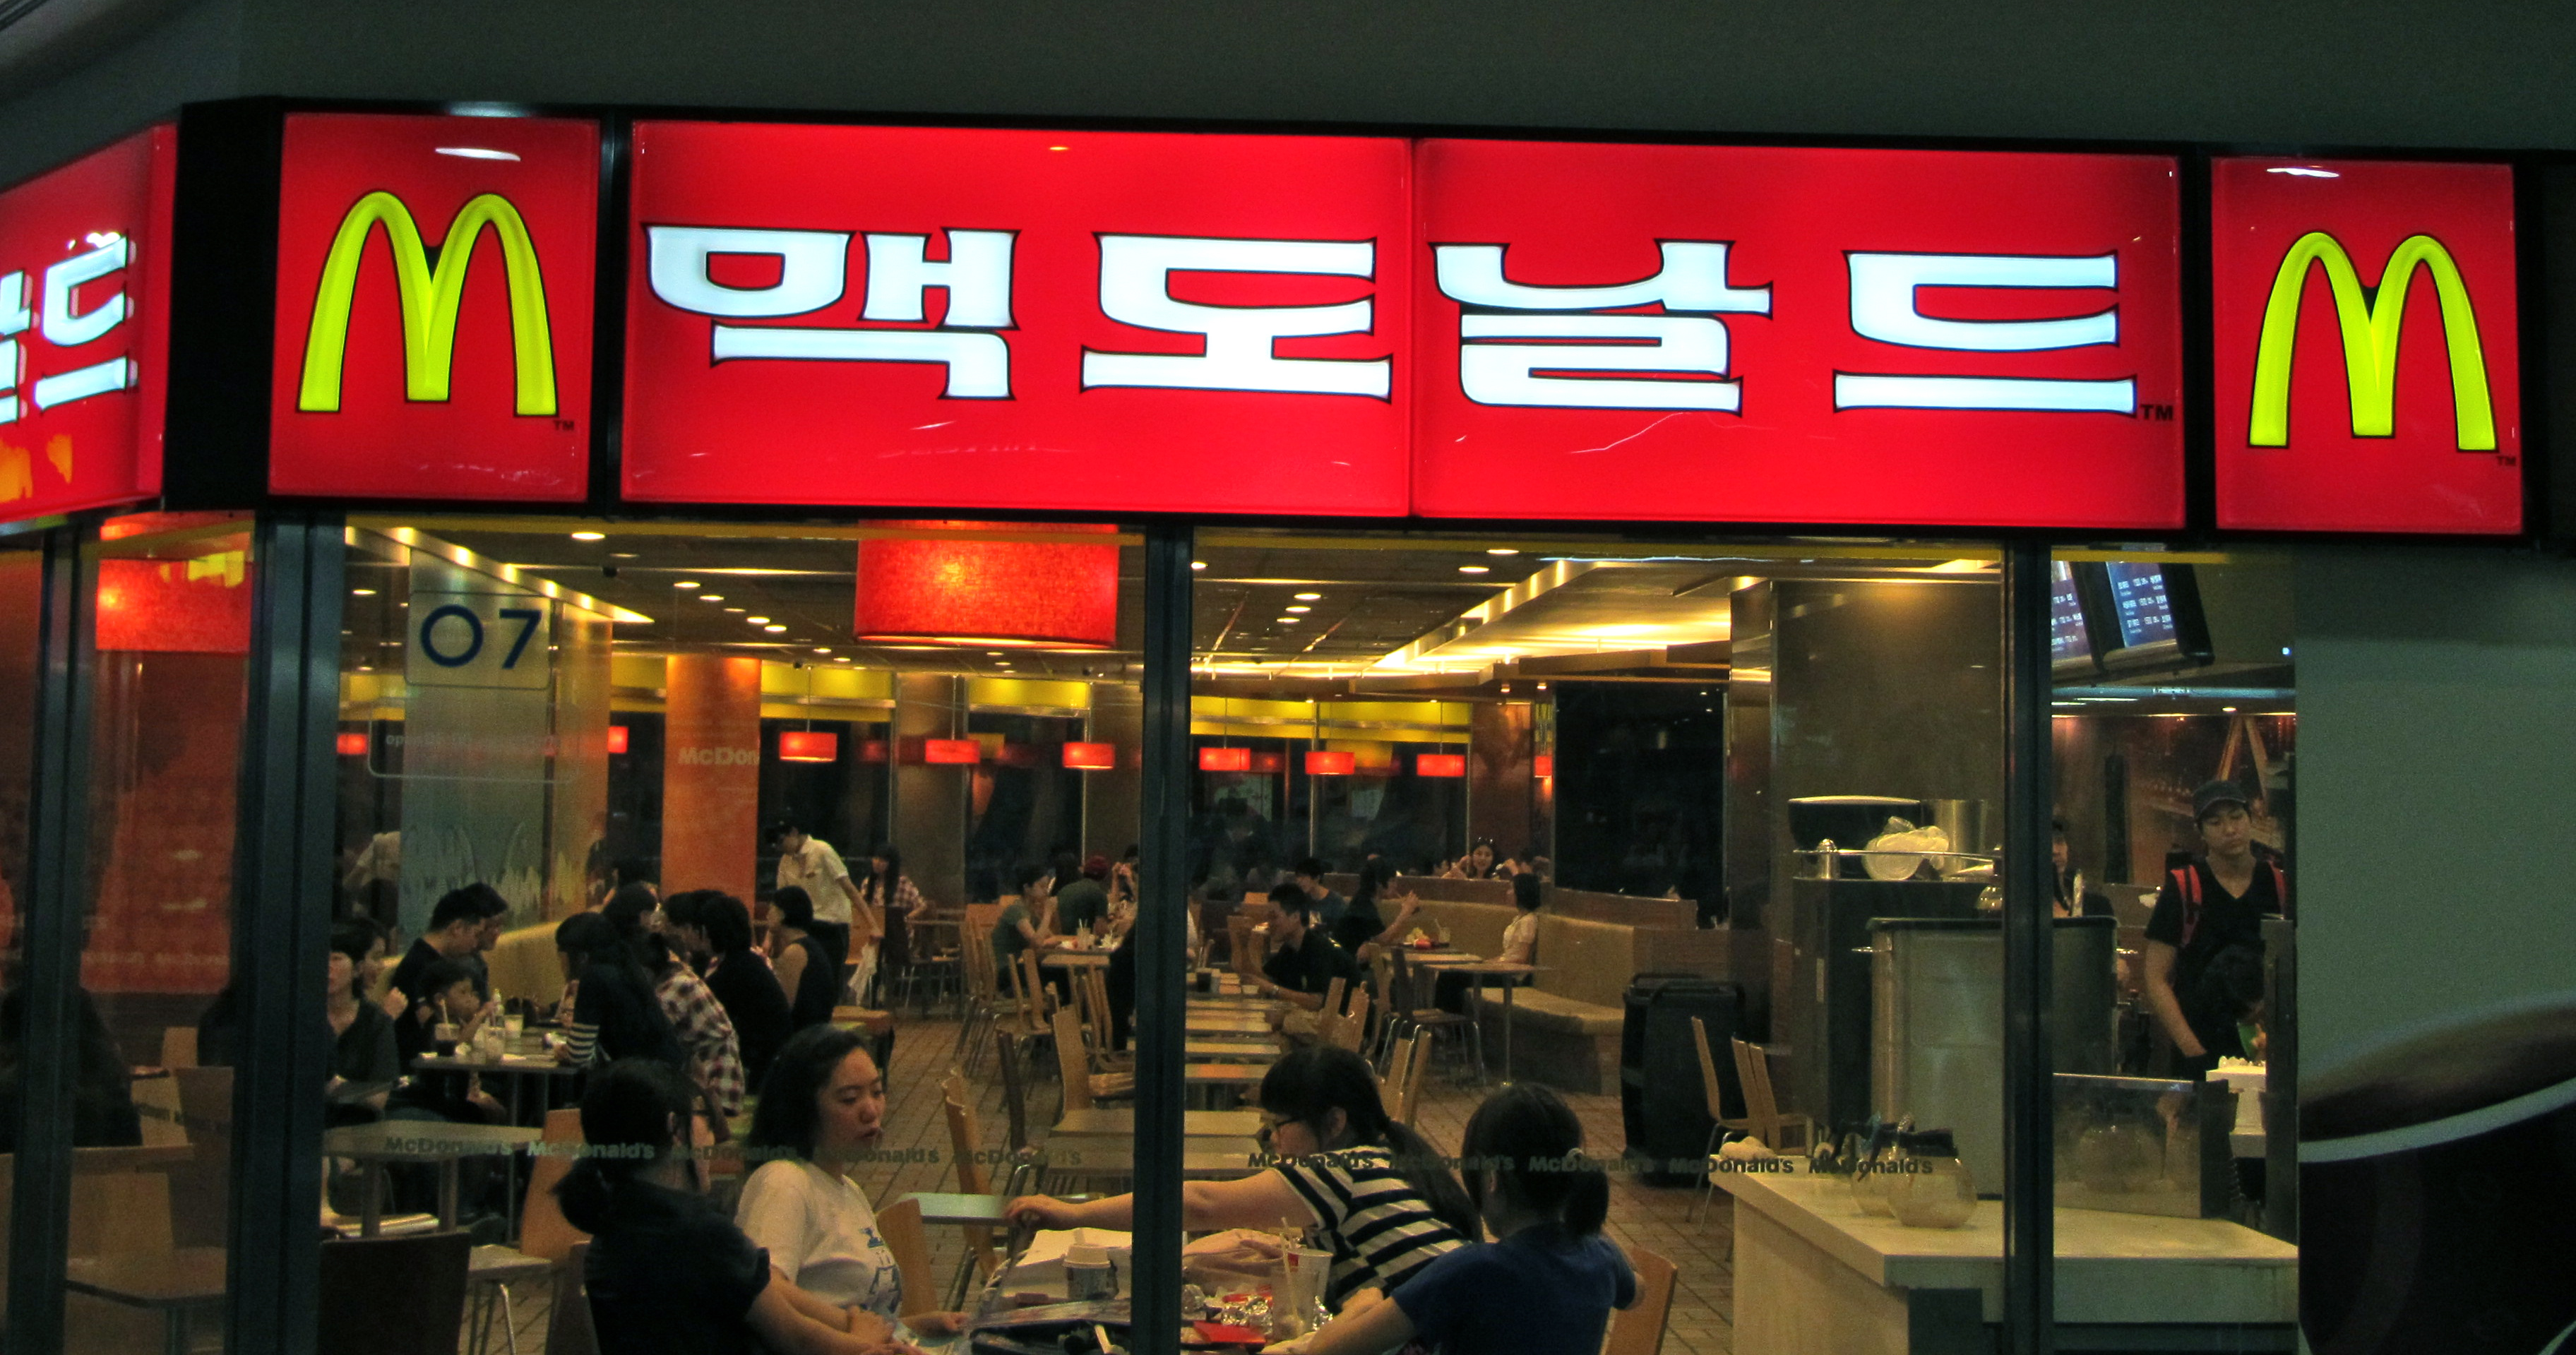 McDonald's is common and popular in South Korea, and even offers a delivery service.